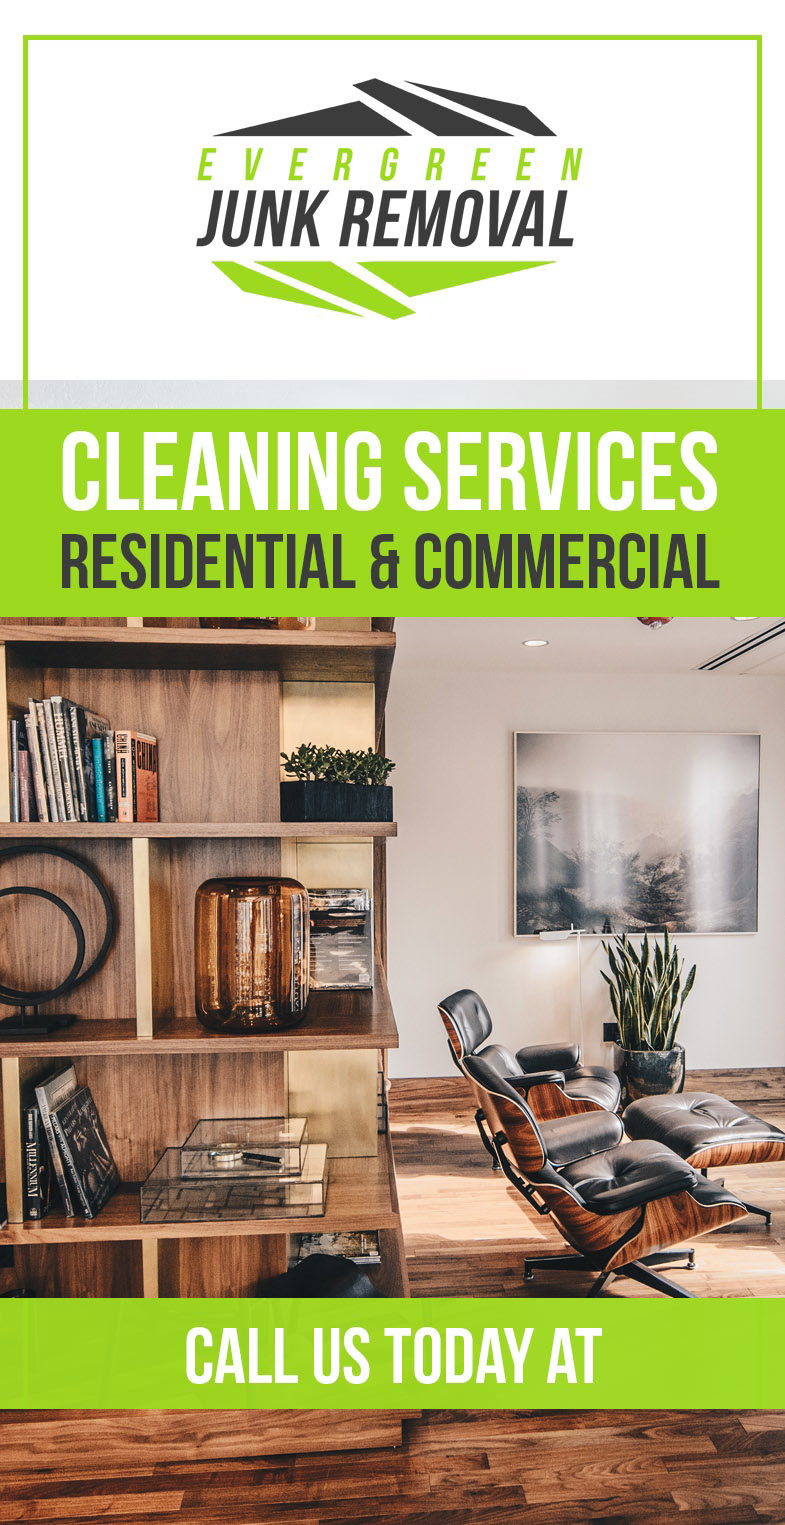 Hallandale Beach Commercial Cleaning